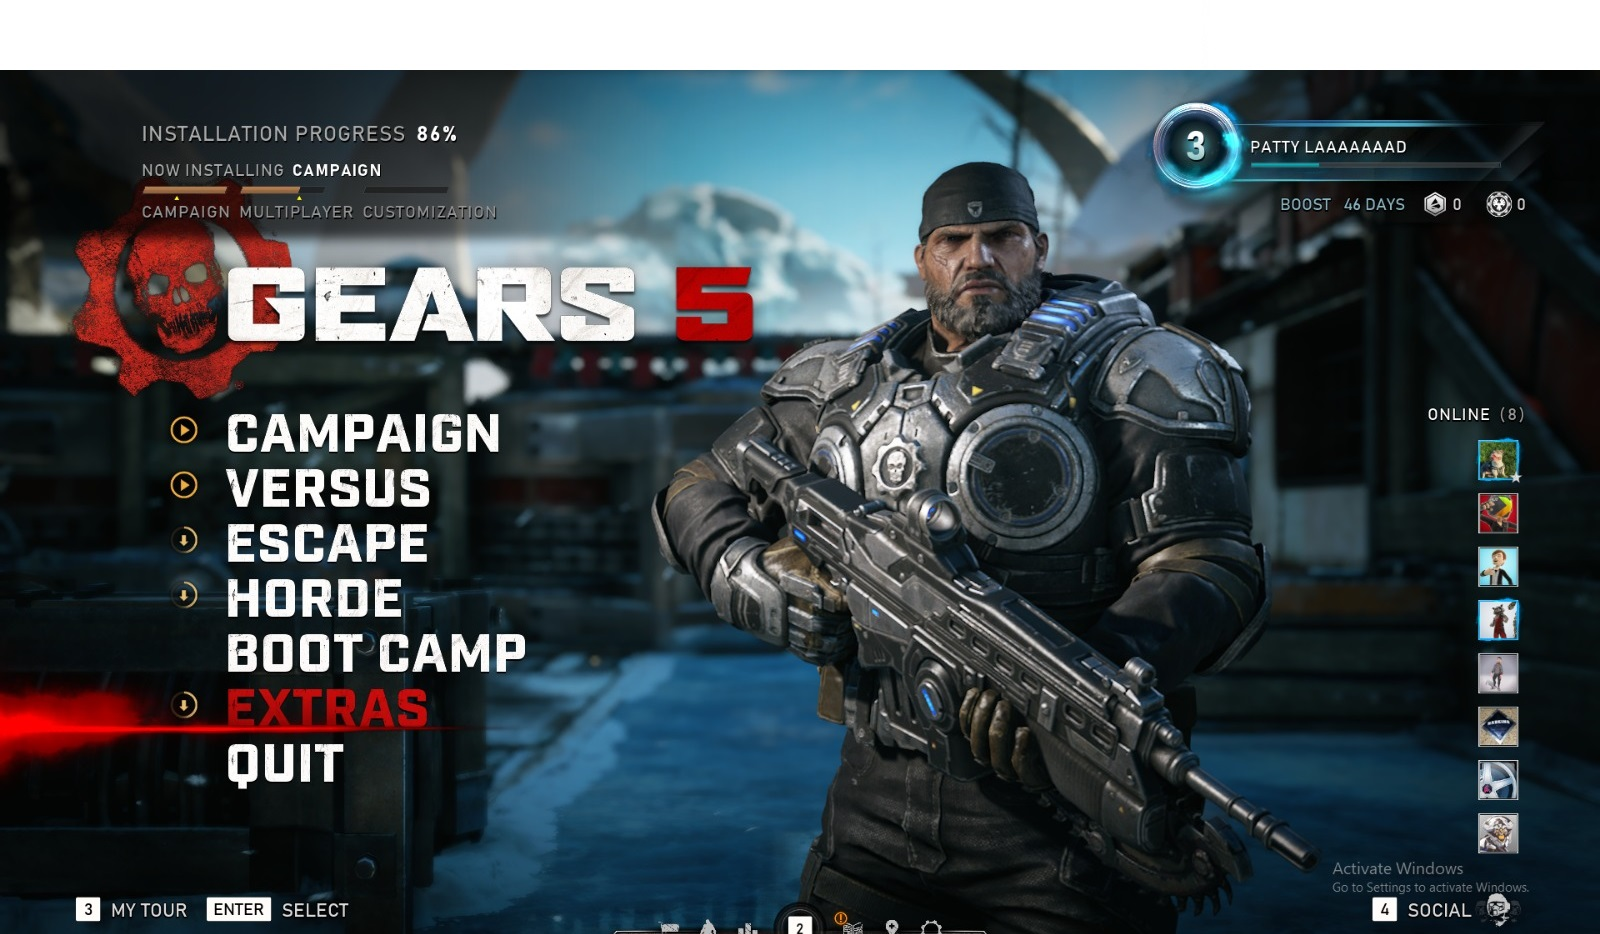 Gears of War 5 will not finish installation b20b9e9d-586b-45a5-8ce5-bb7bc87fb27e?upload=true.jpg